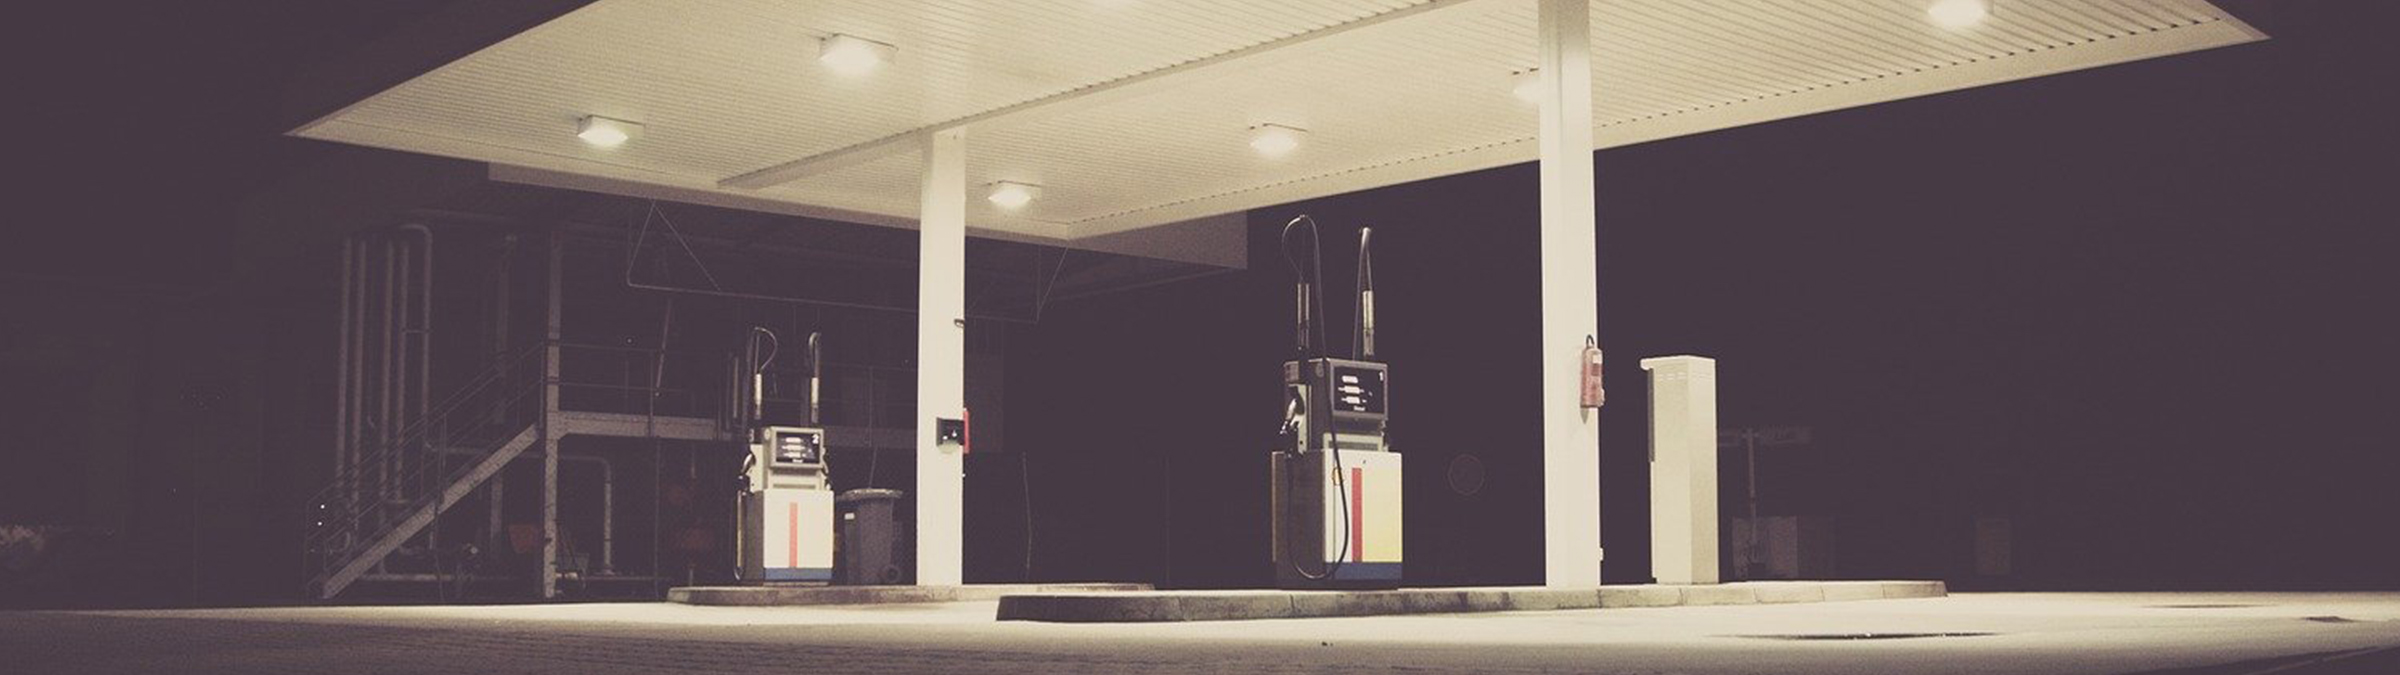 Are you filling up or fuming? | Petrol Shortage Controversy